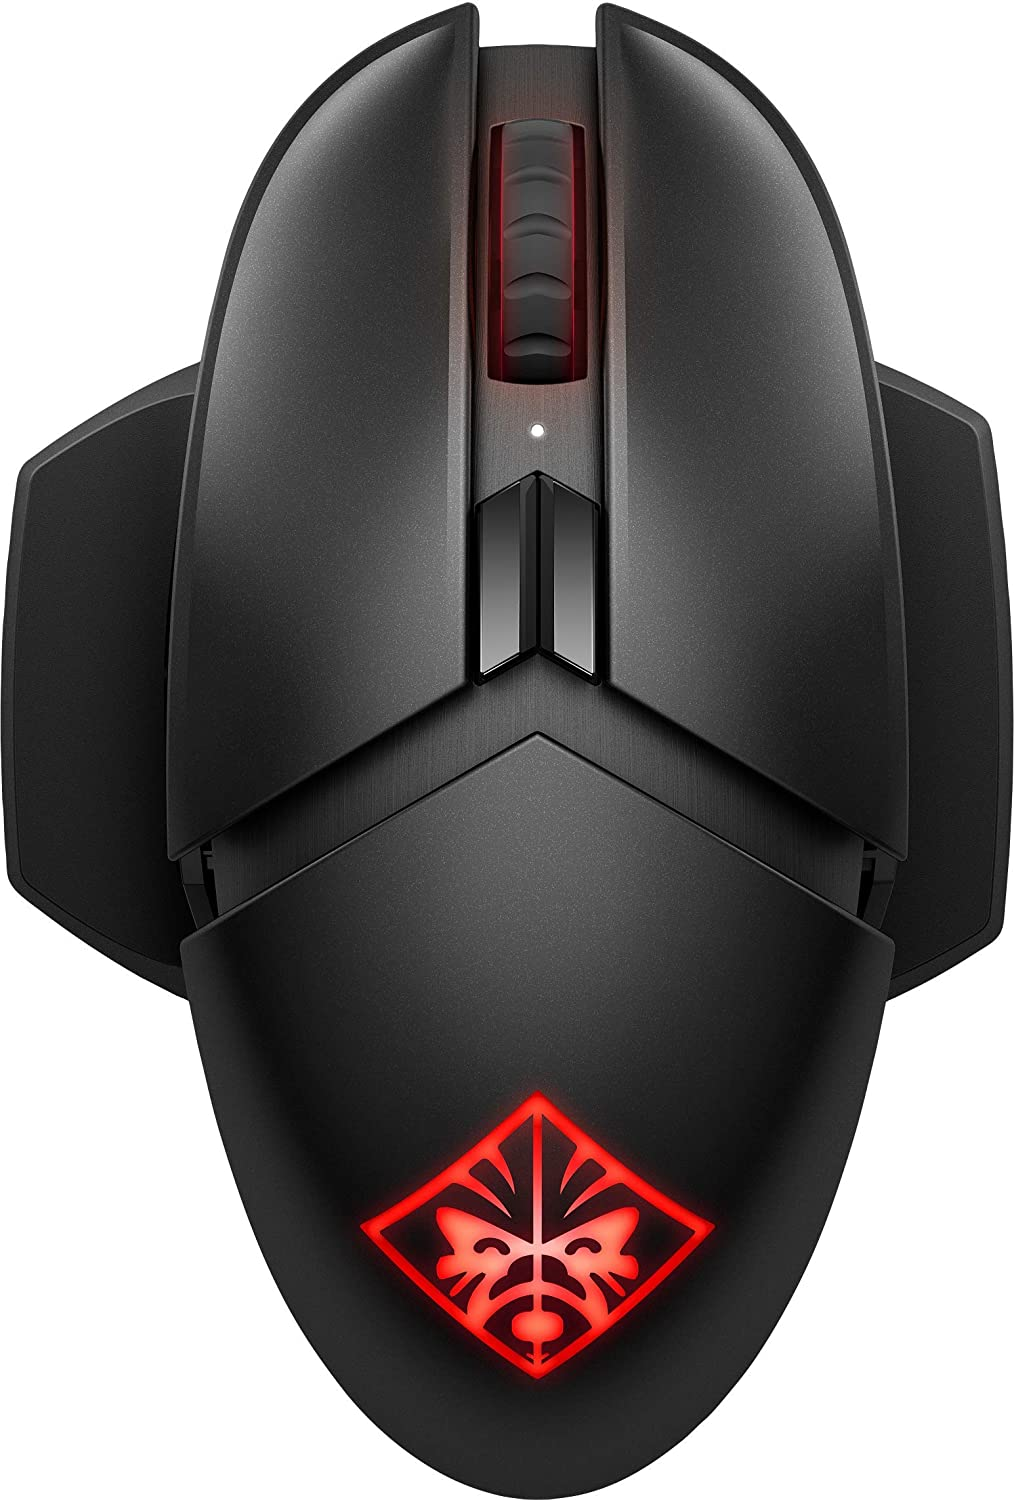 Omen by HP Photon Wireless Gaming Mouse with Qi Wireless Charging, Programmable Buttons, E-Sport DPI, and Custom RGB Lighting Black